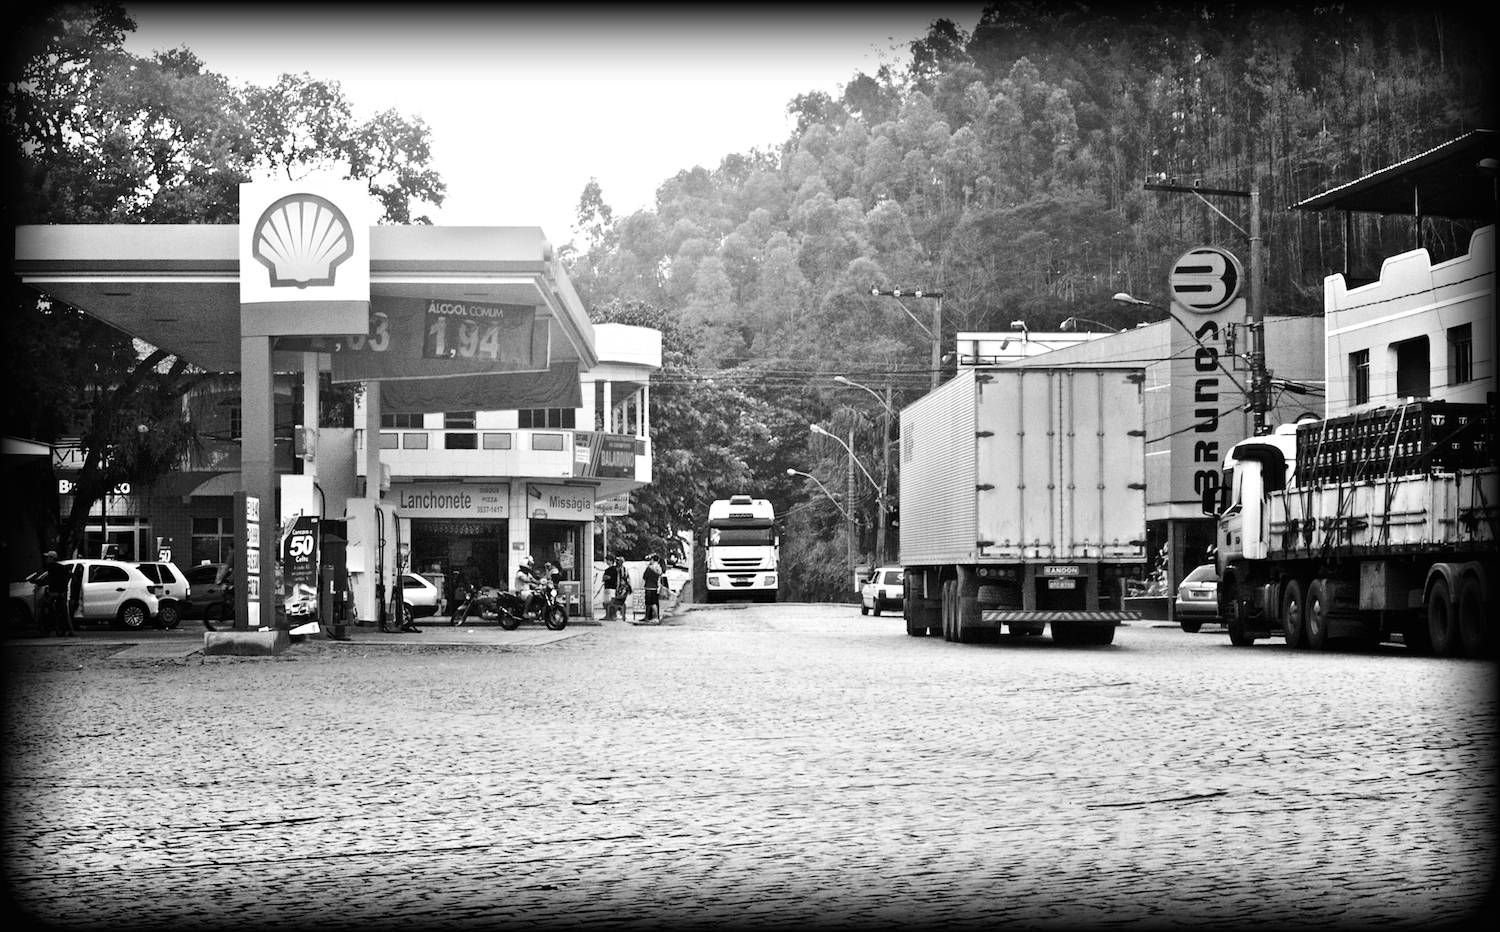 The center of Iconha, trucking capital of Brazil